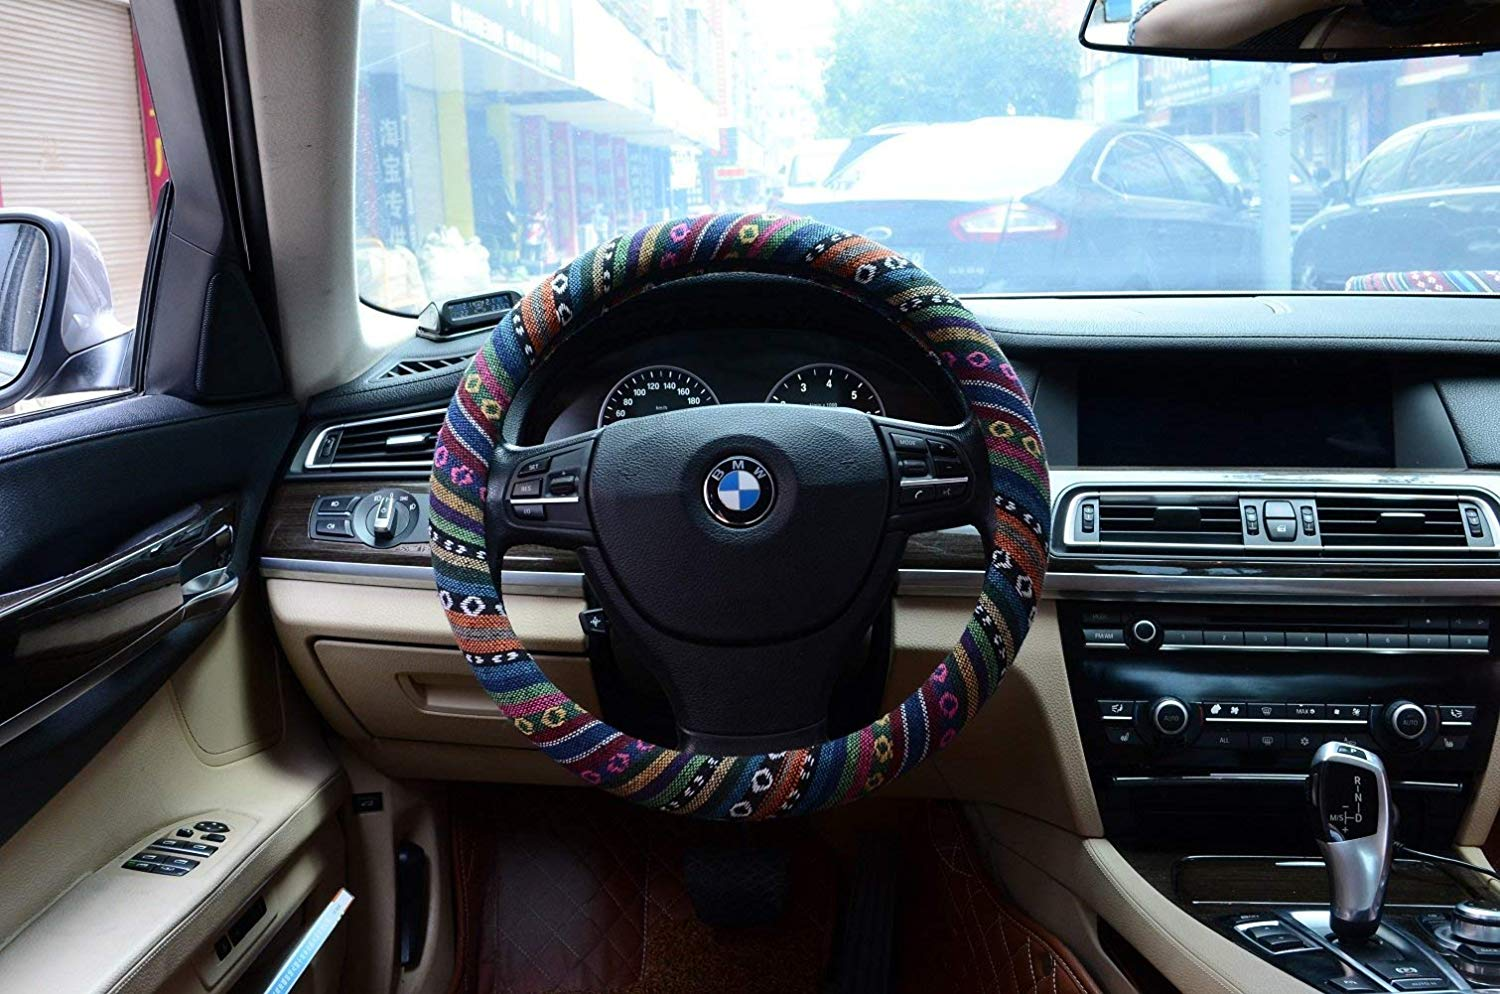 Cloth steering wheel covers can protect your skin